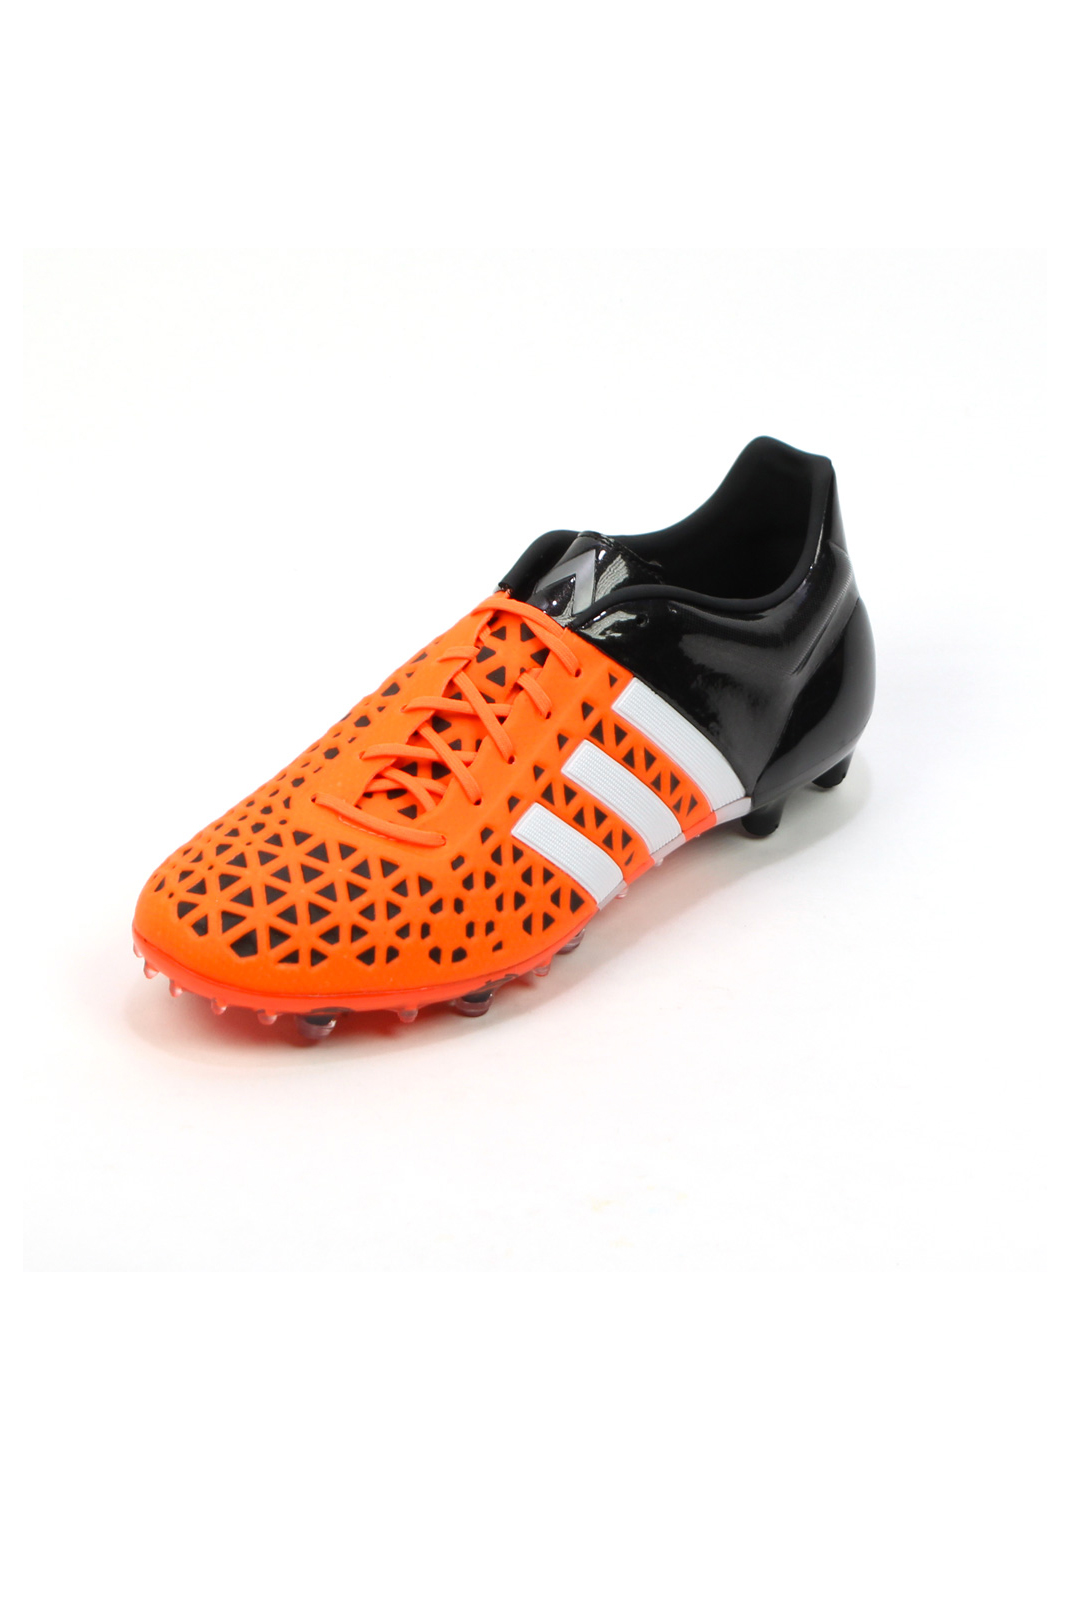 Chaussures   Adidas S83209 ACE 15.1 FG/AG ORANGE